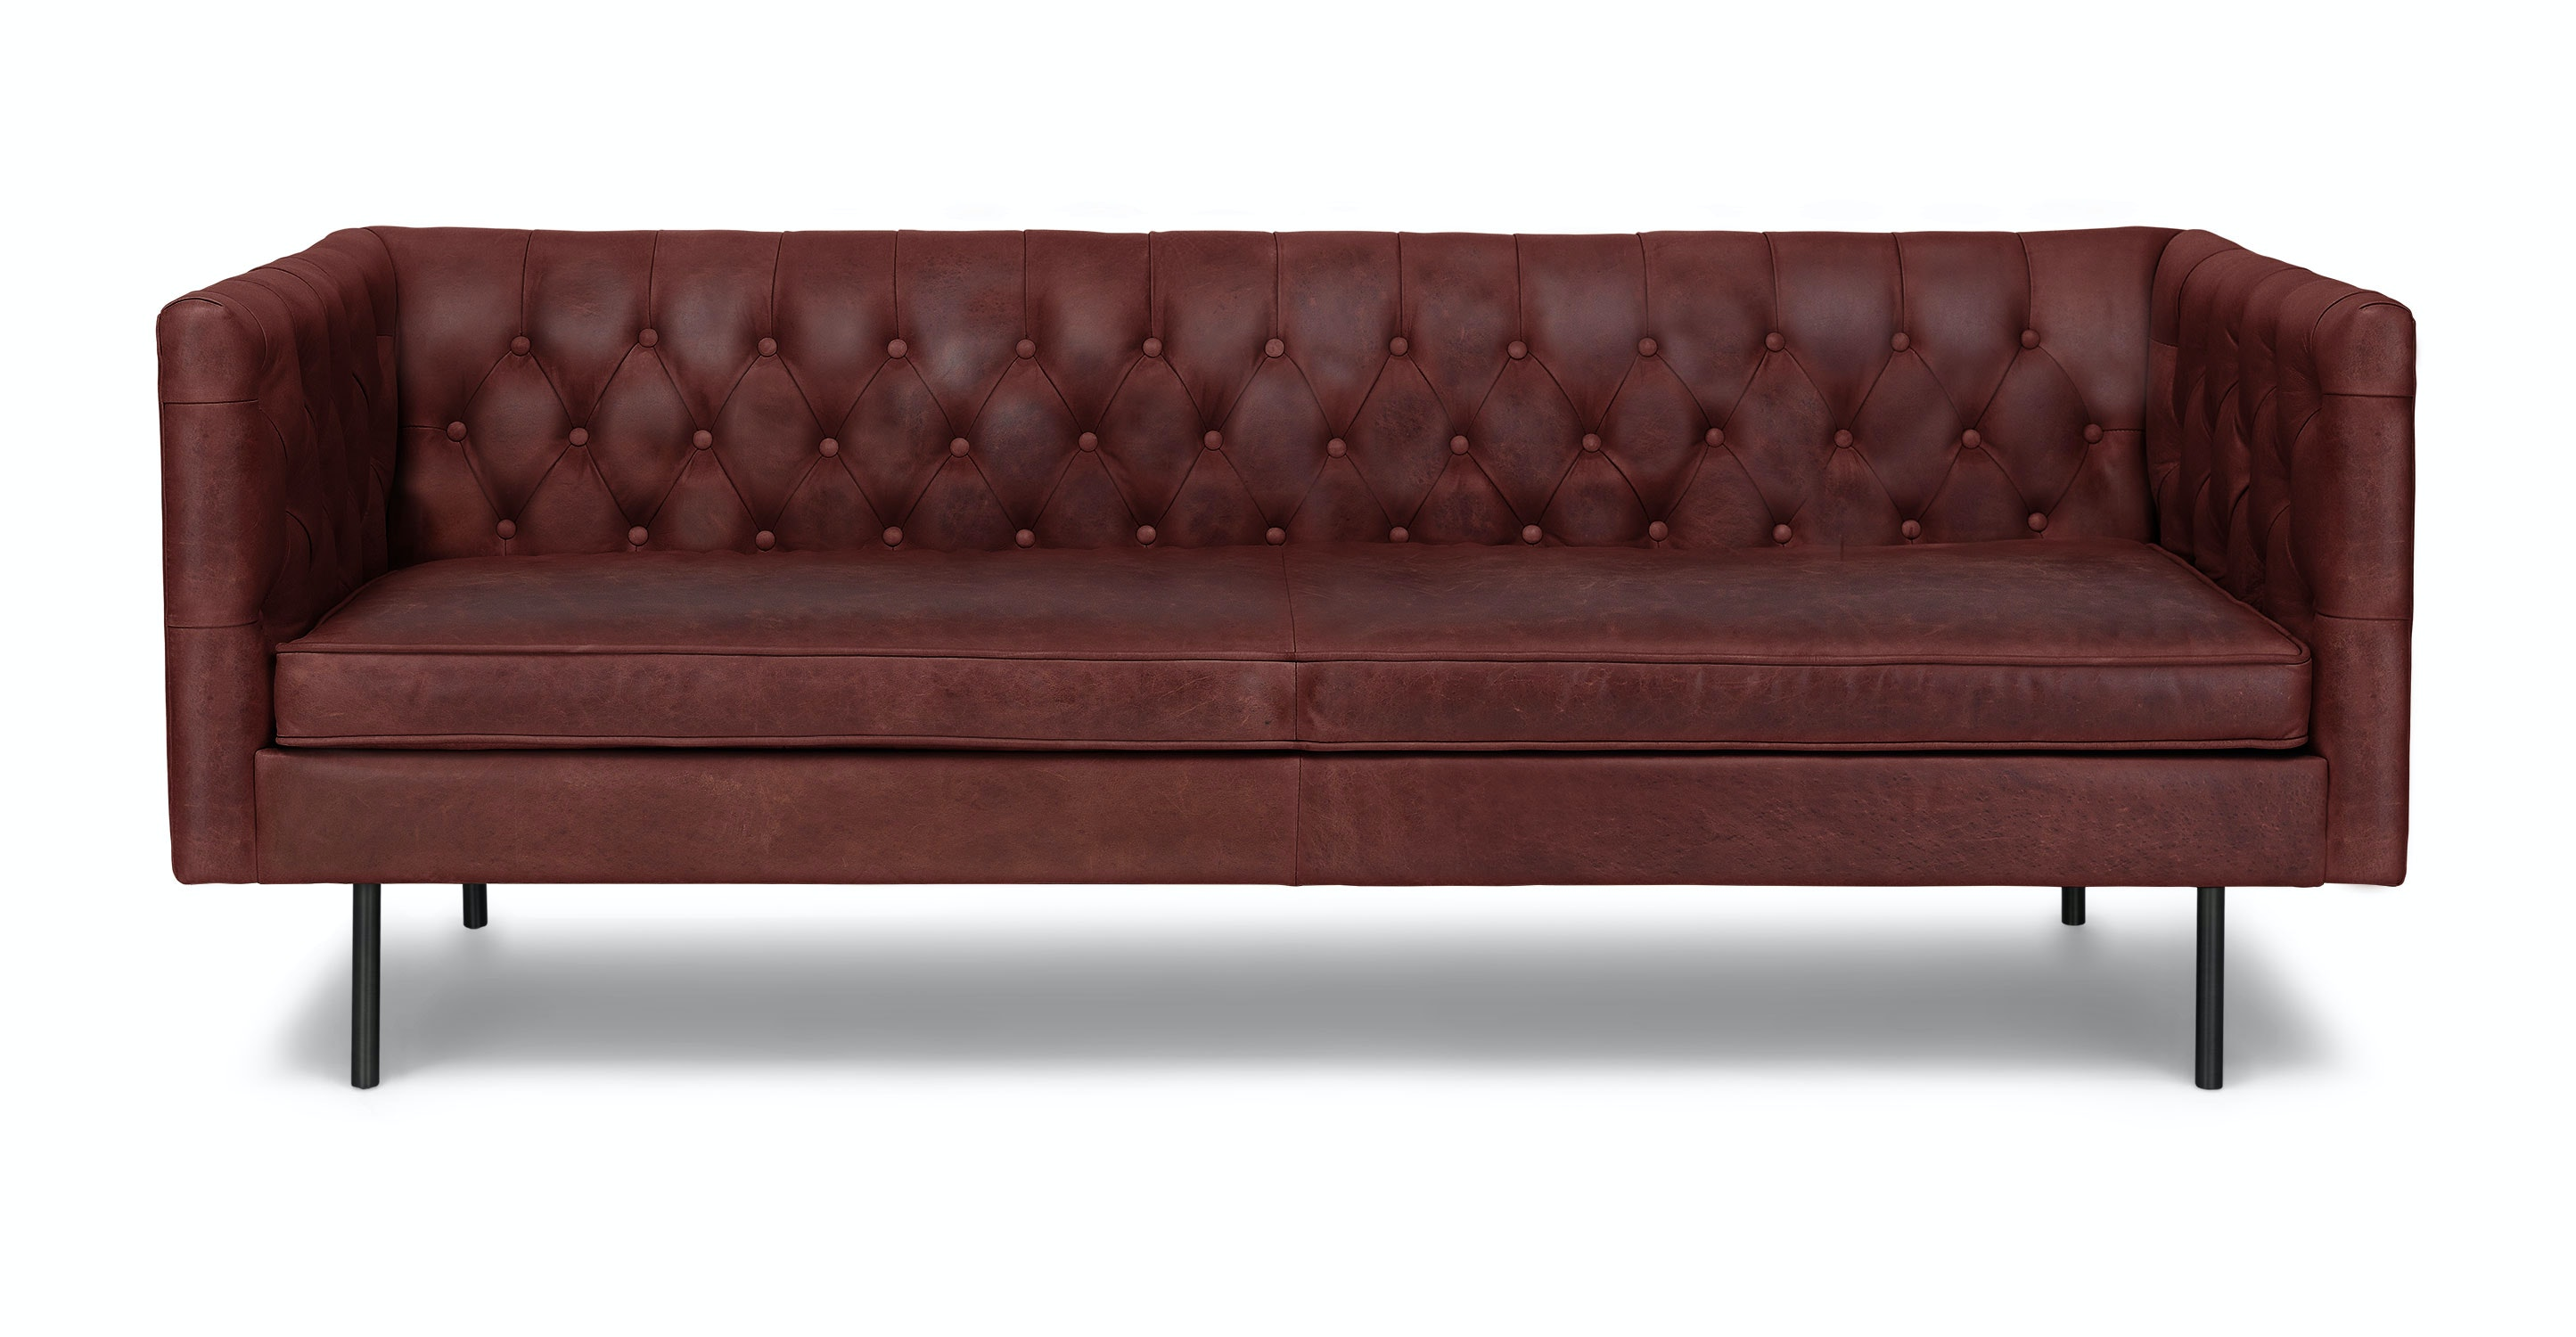 oxblood leather sofa modern chesterfield leather sofa 79 west elm thesofa. Black Bedroom Furniture Sets. Home Design Ideas